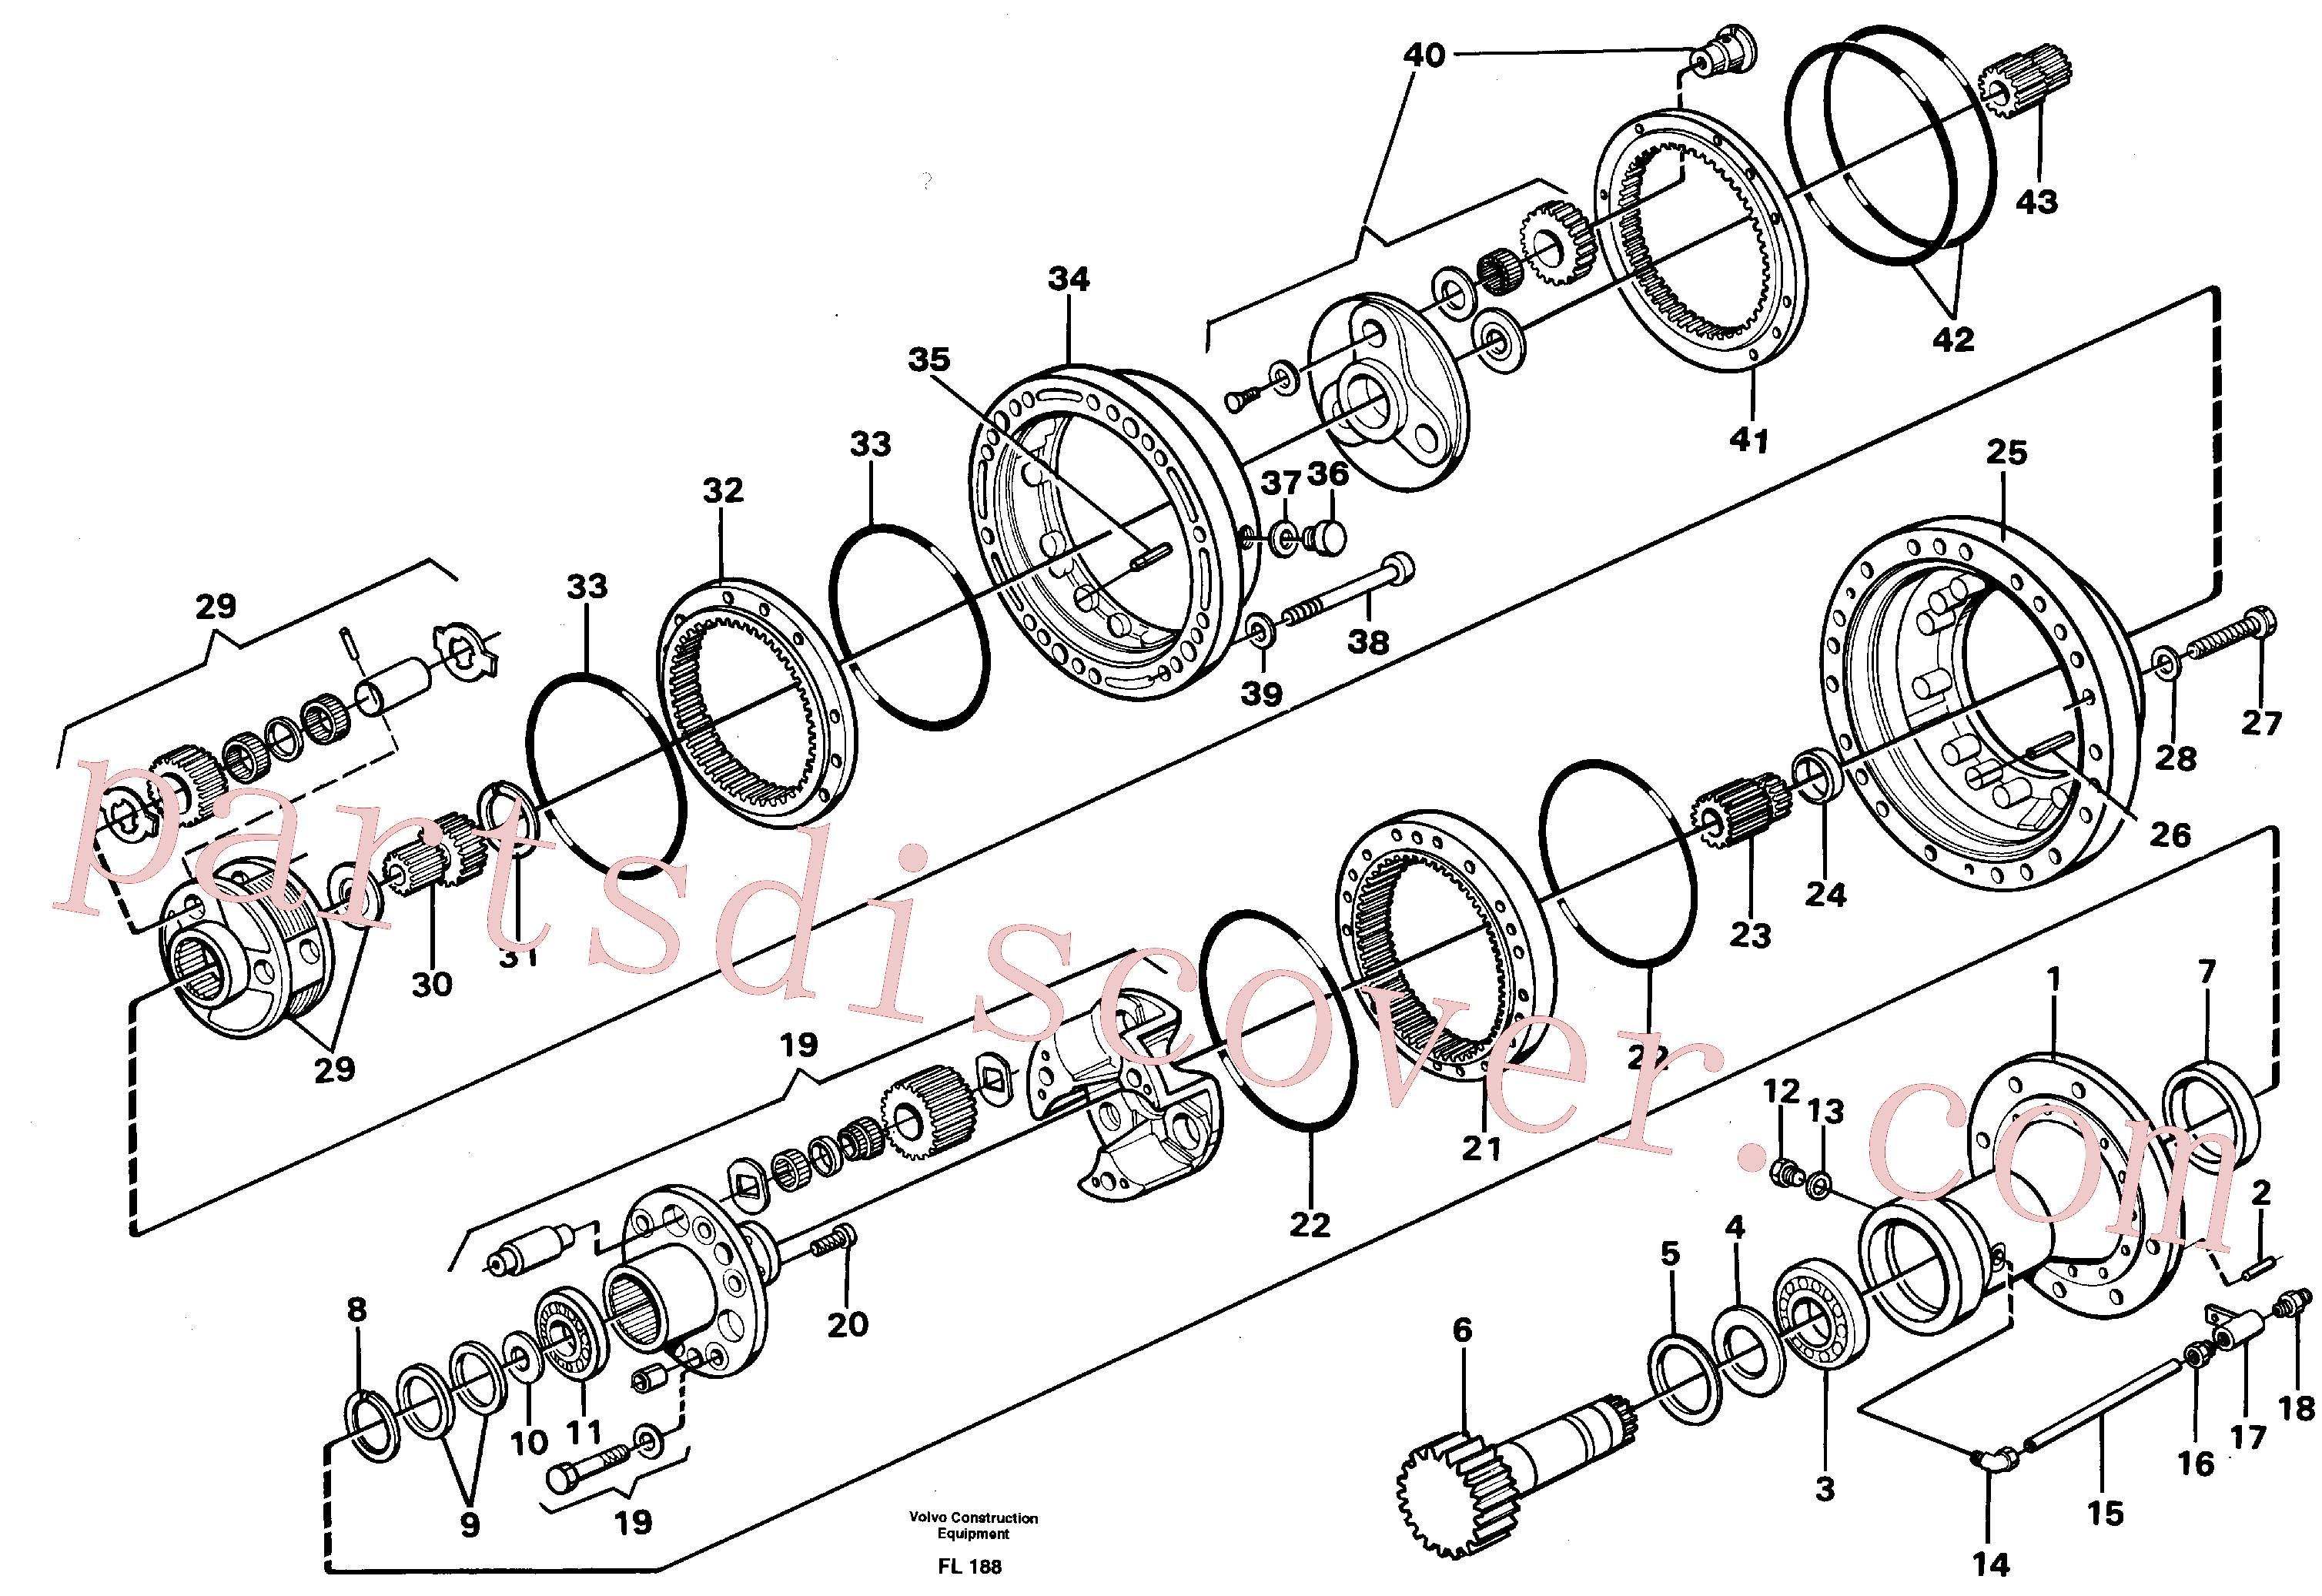 VOE11700029 for Volvo Swing gearbox(FL188 assembly)